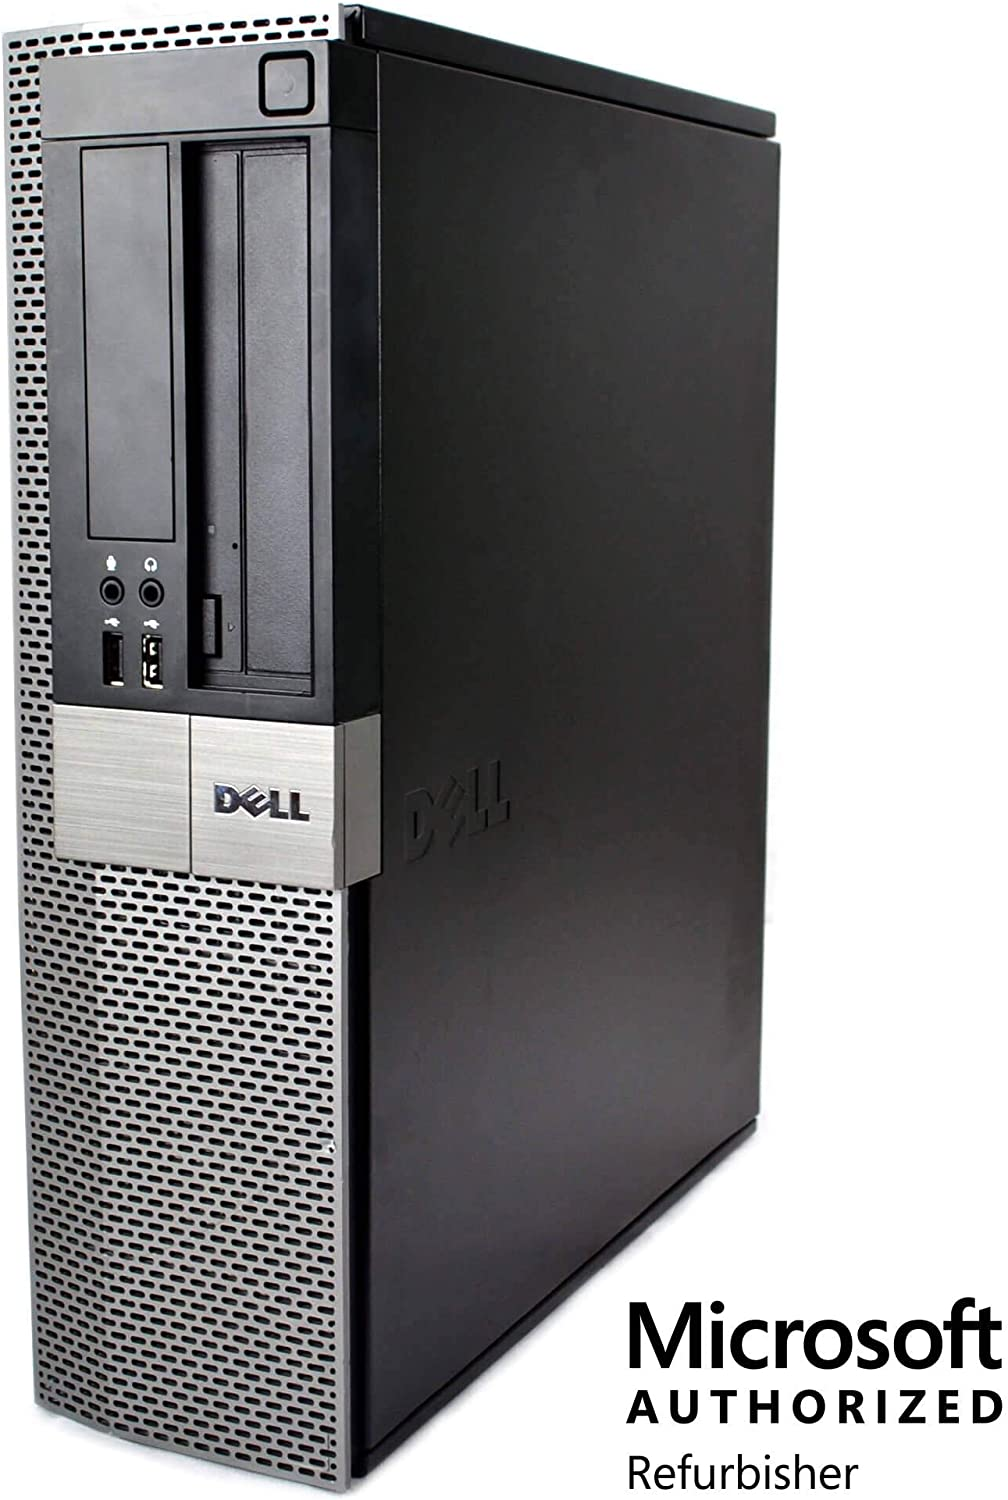 Dell Optiplex 980 Custom PC, Intel Core i5 3.2 GHz, DVD, Windows 10 Renewed